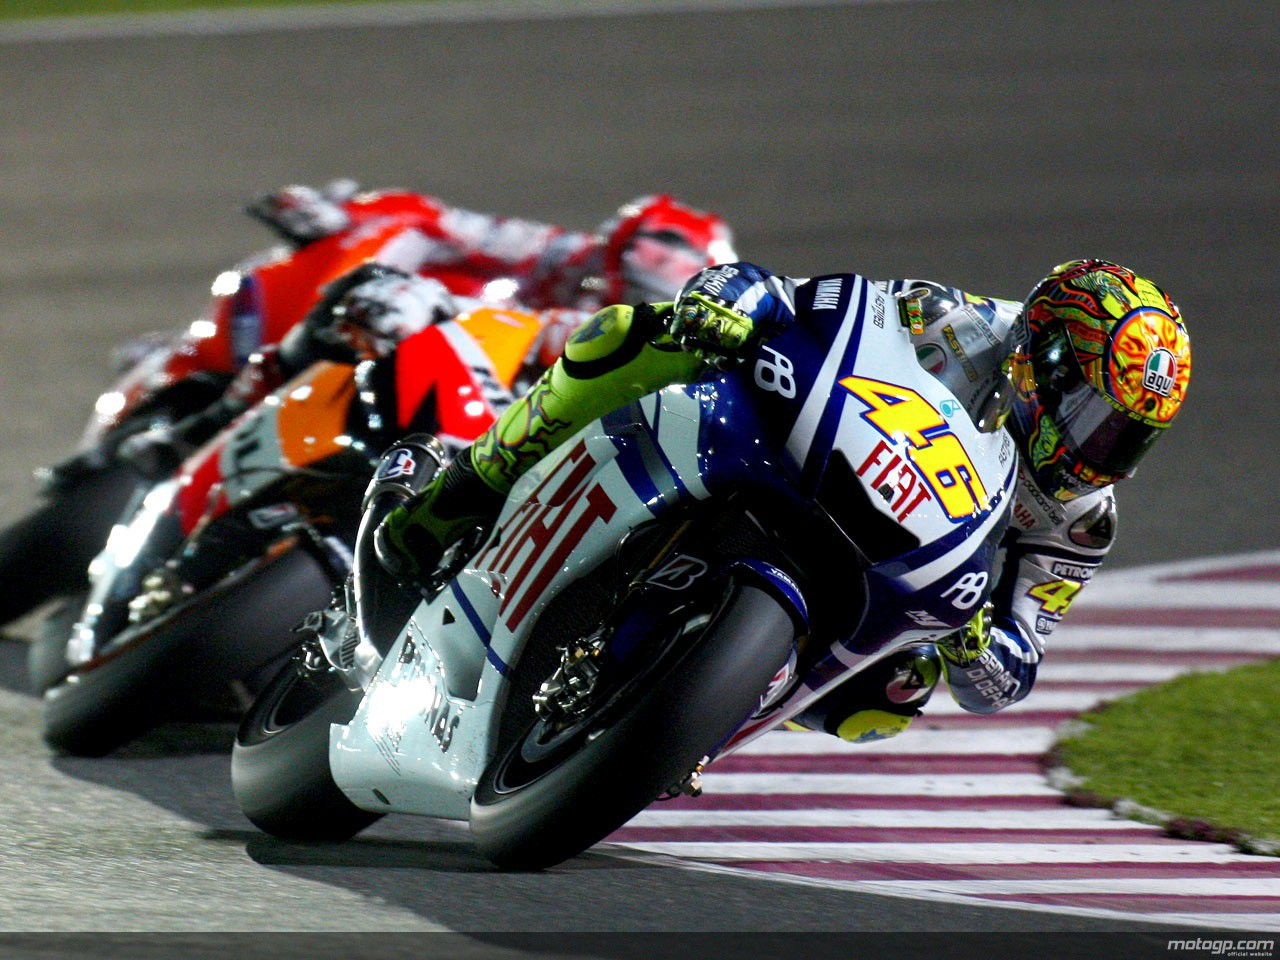 2010 motogp season Photo